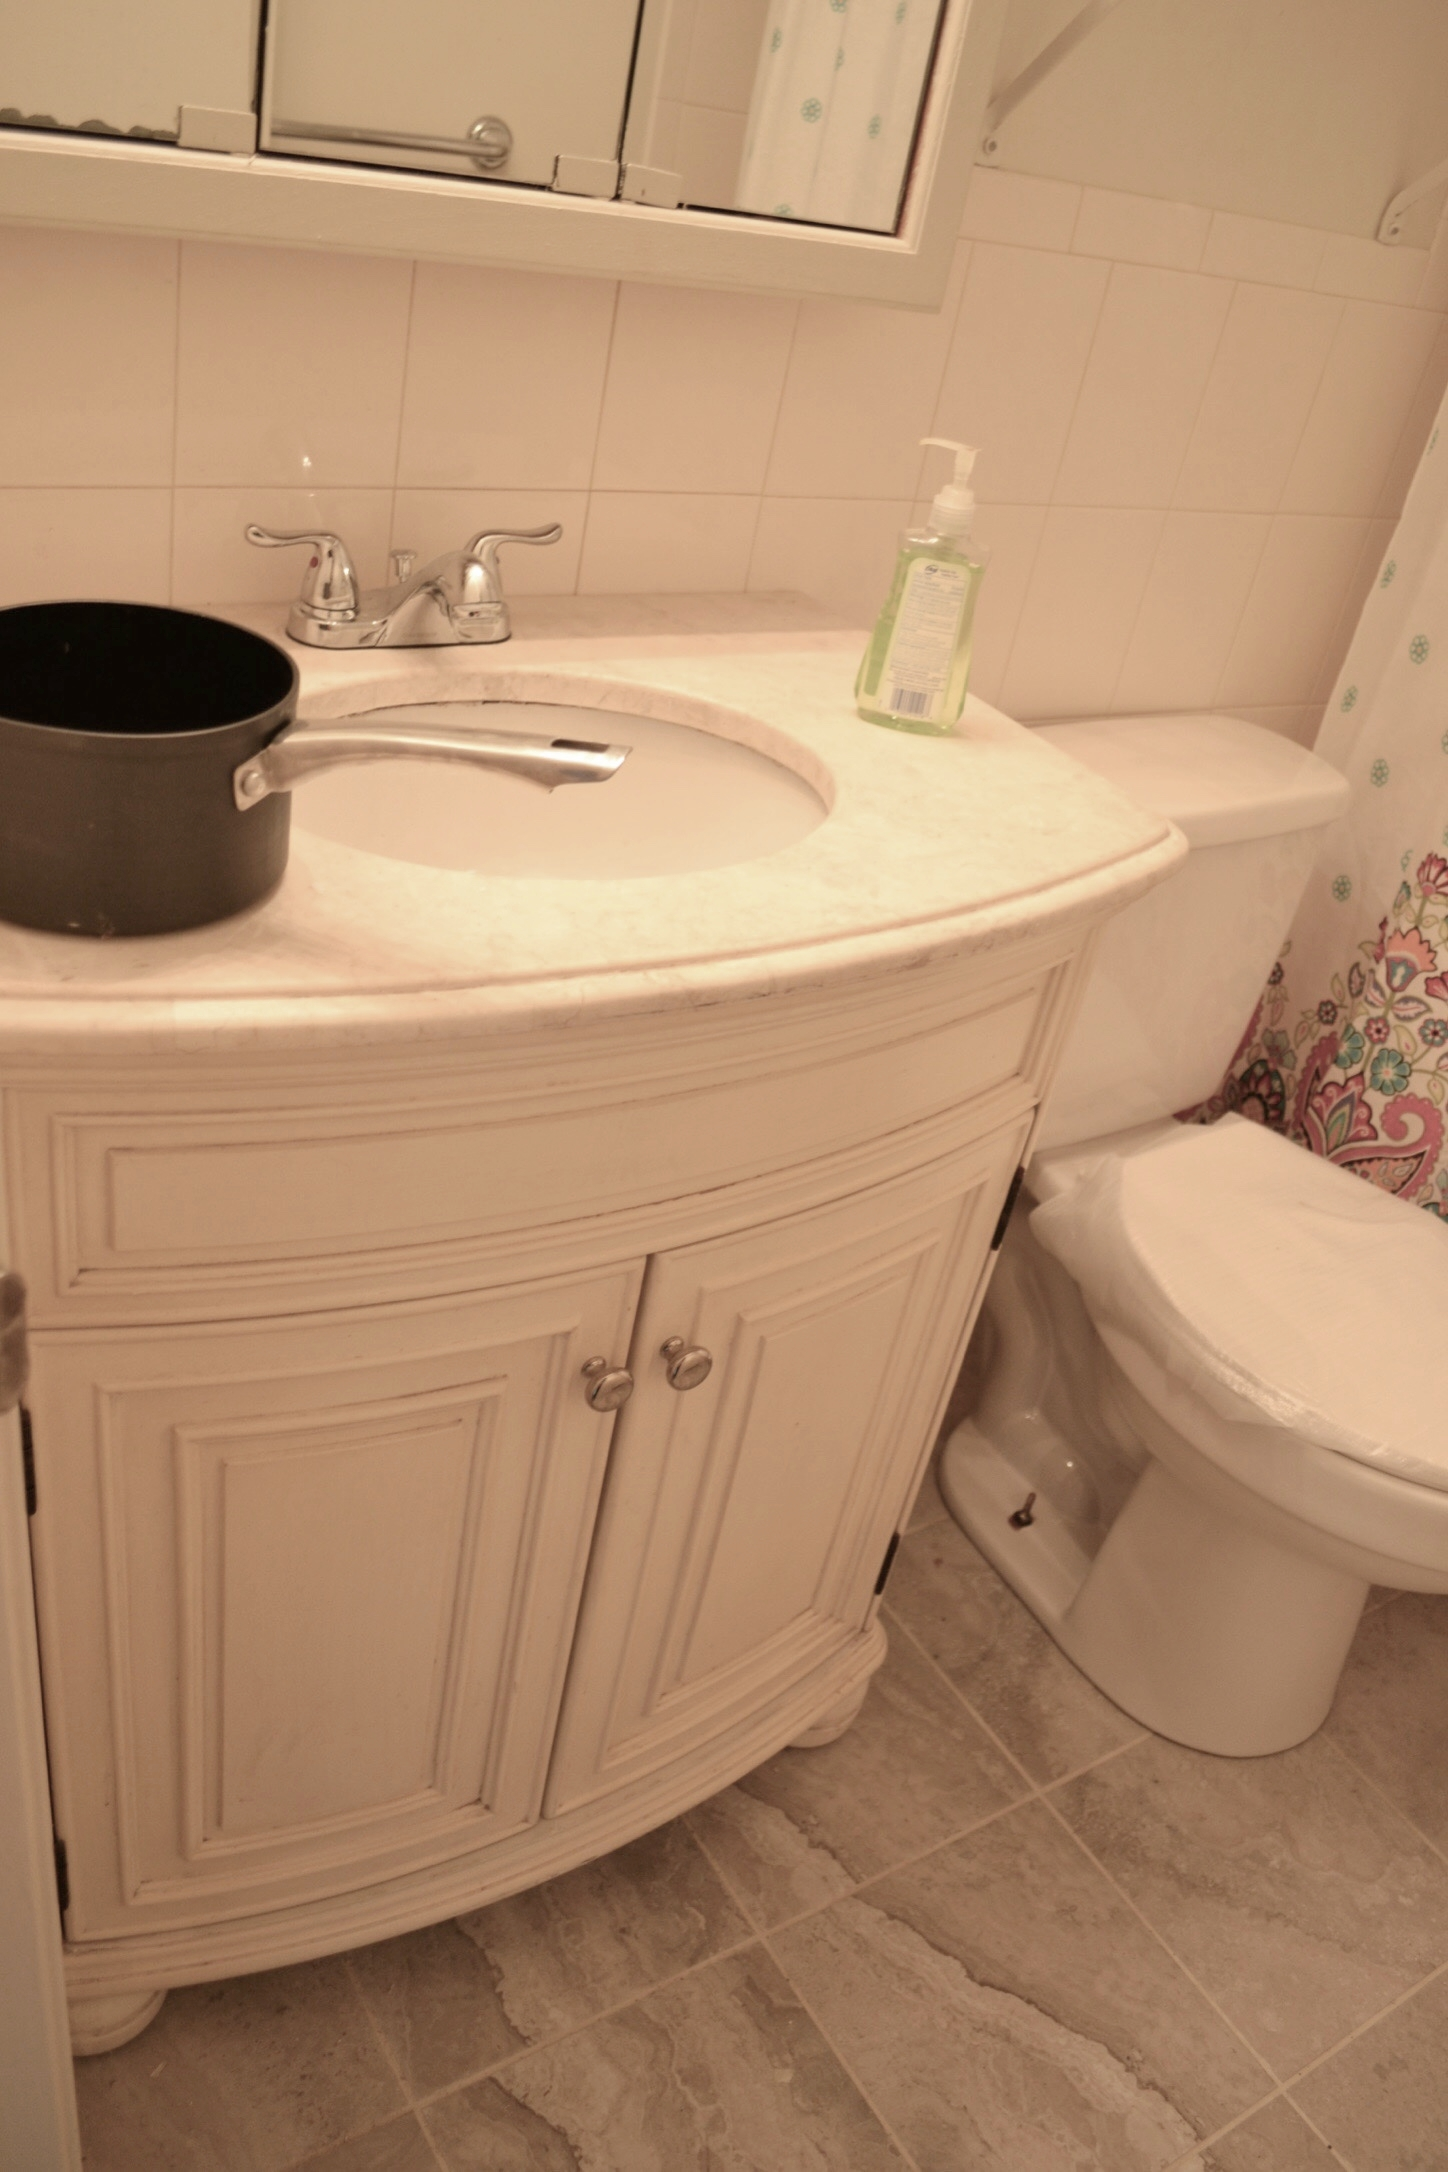 Condo Before-Bathroom (why is there a pot???)